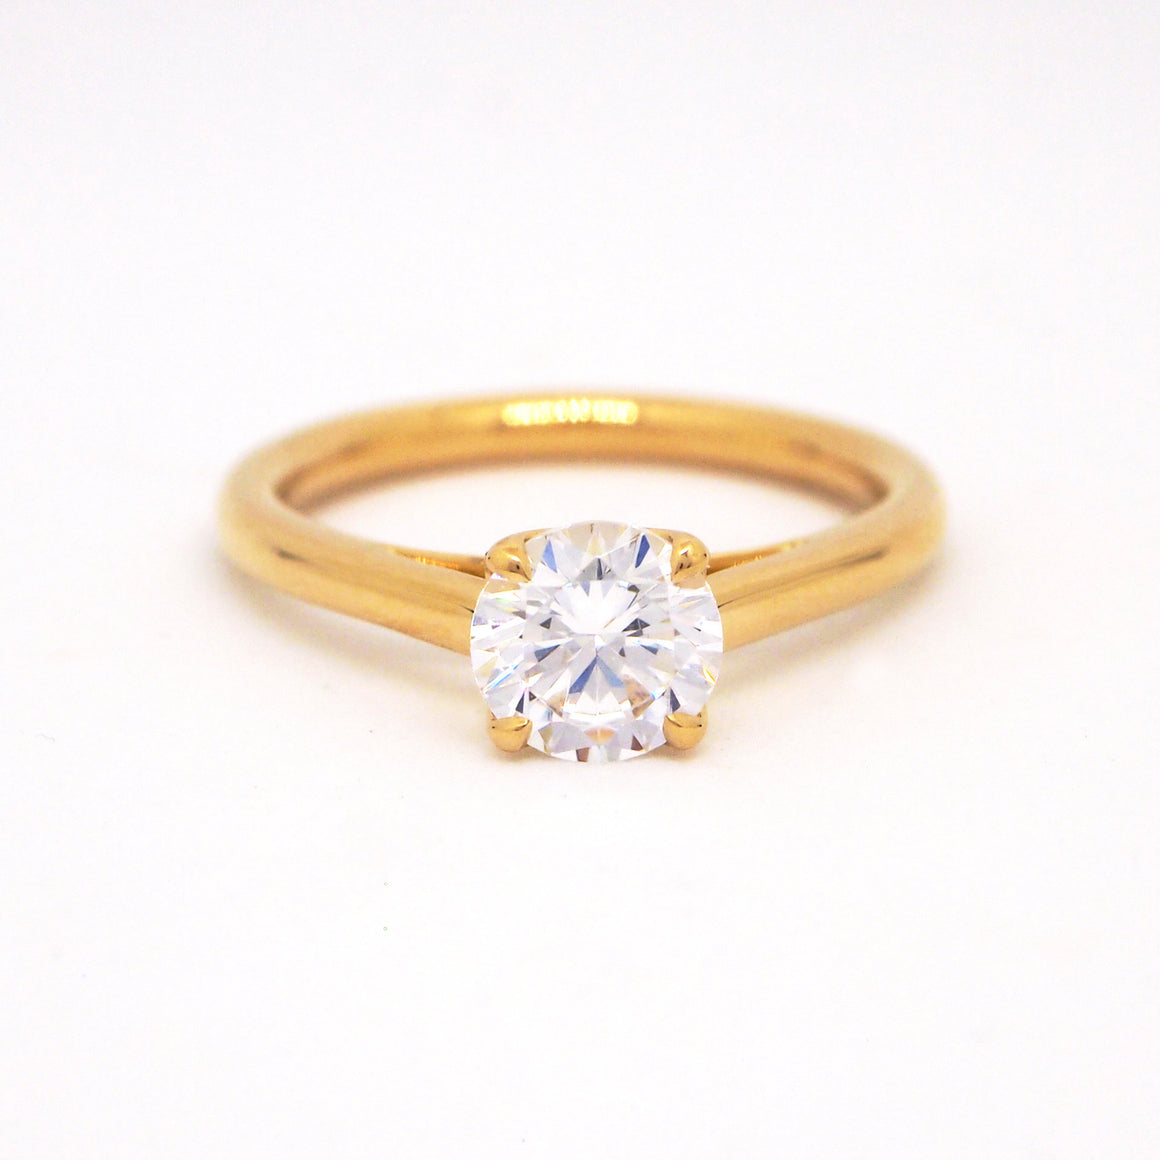 Point of Love 18K yellow gold solitaire engagement ring with a diamond 'point' weighing 0.09 carats.